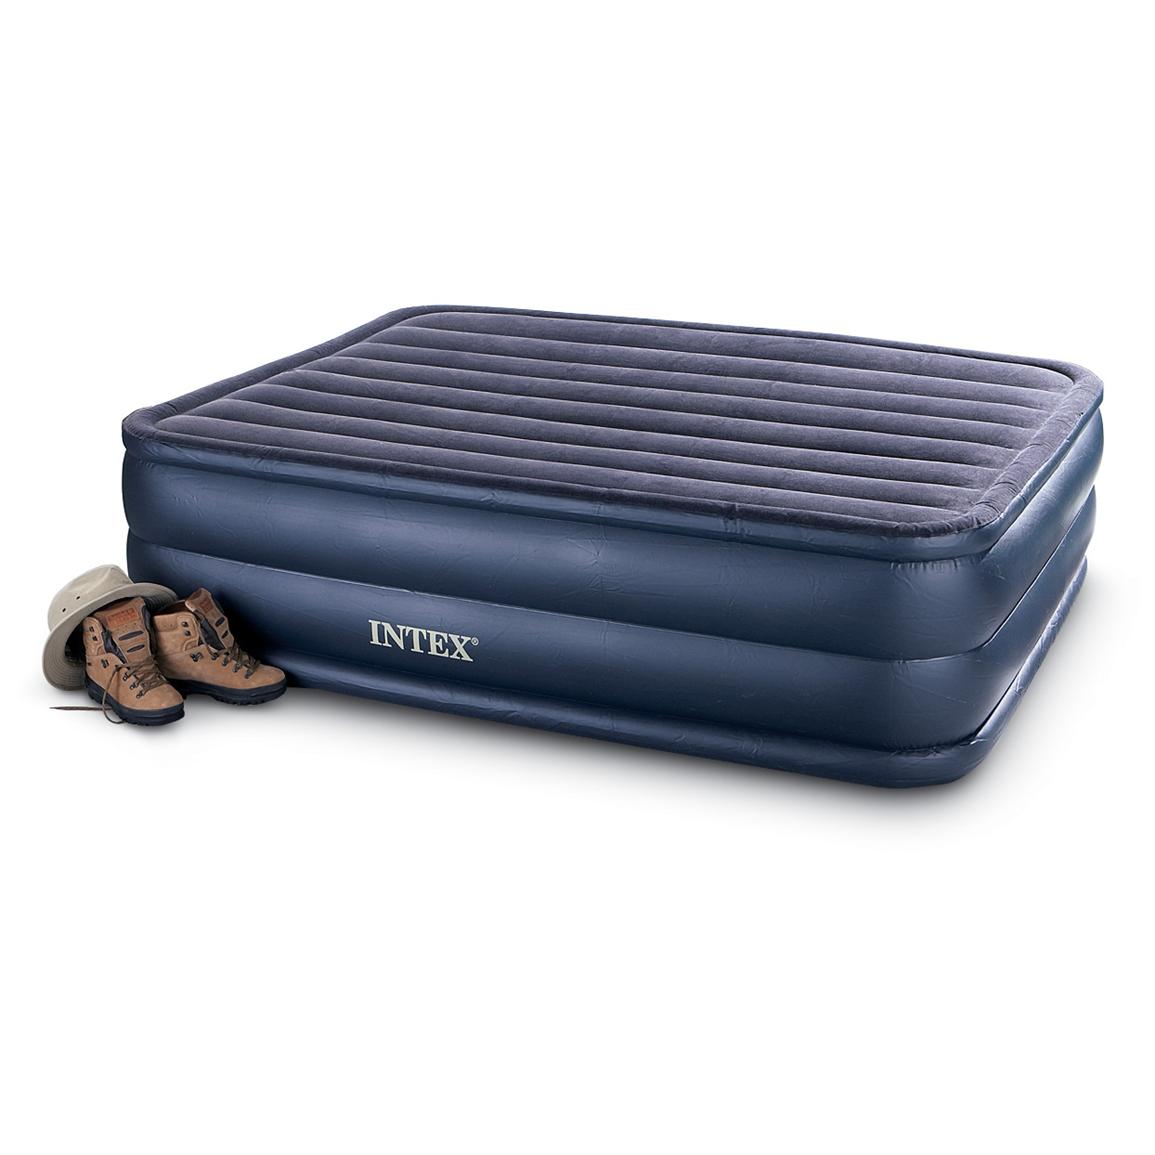 Intex Queen Air Bed Mattress with Built-In Electric Pump